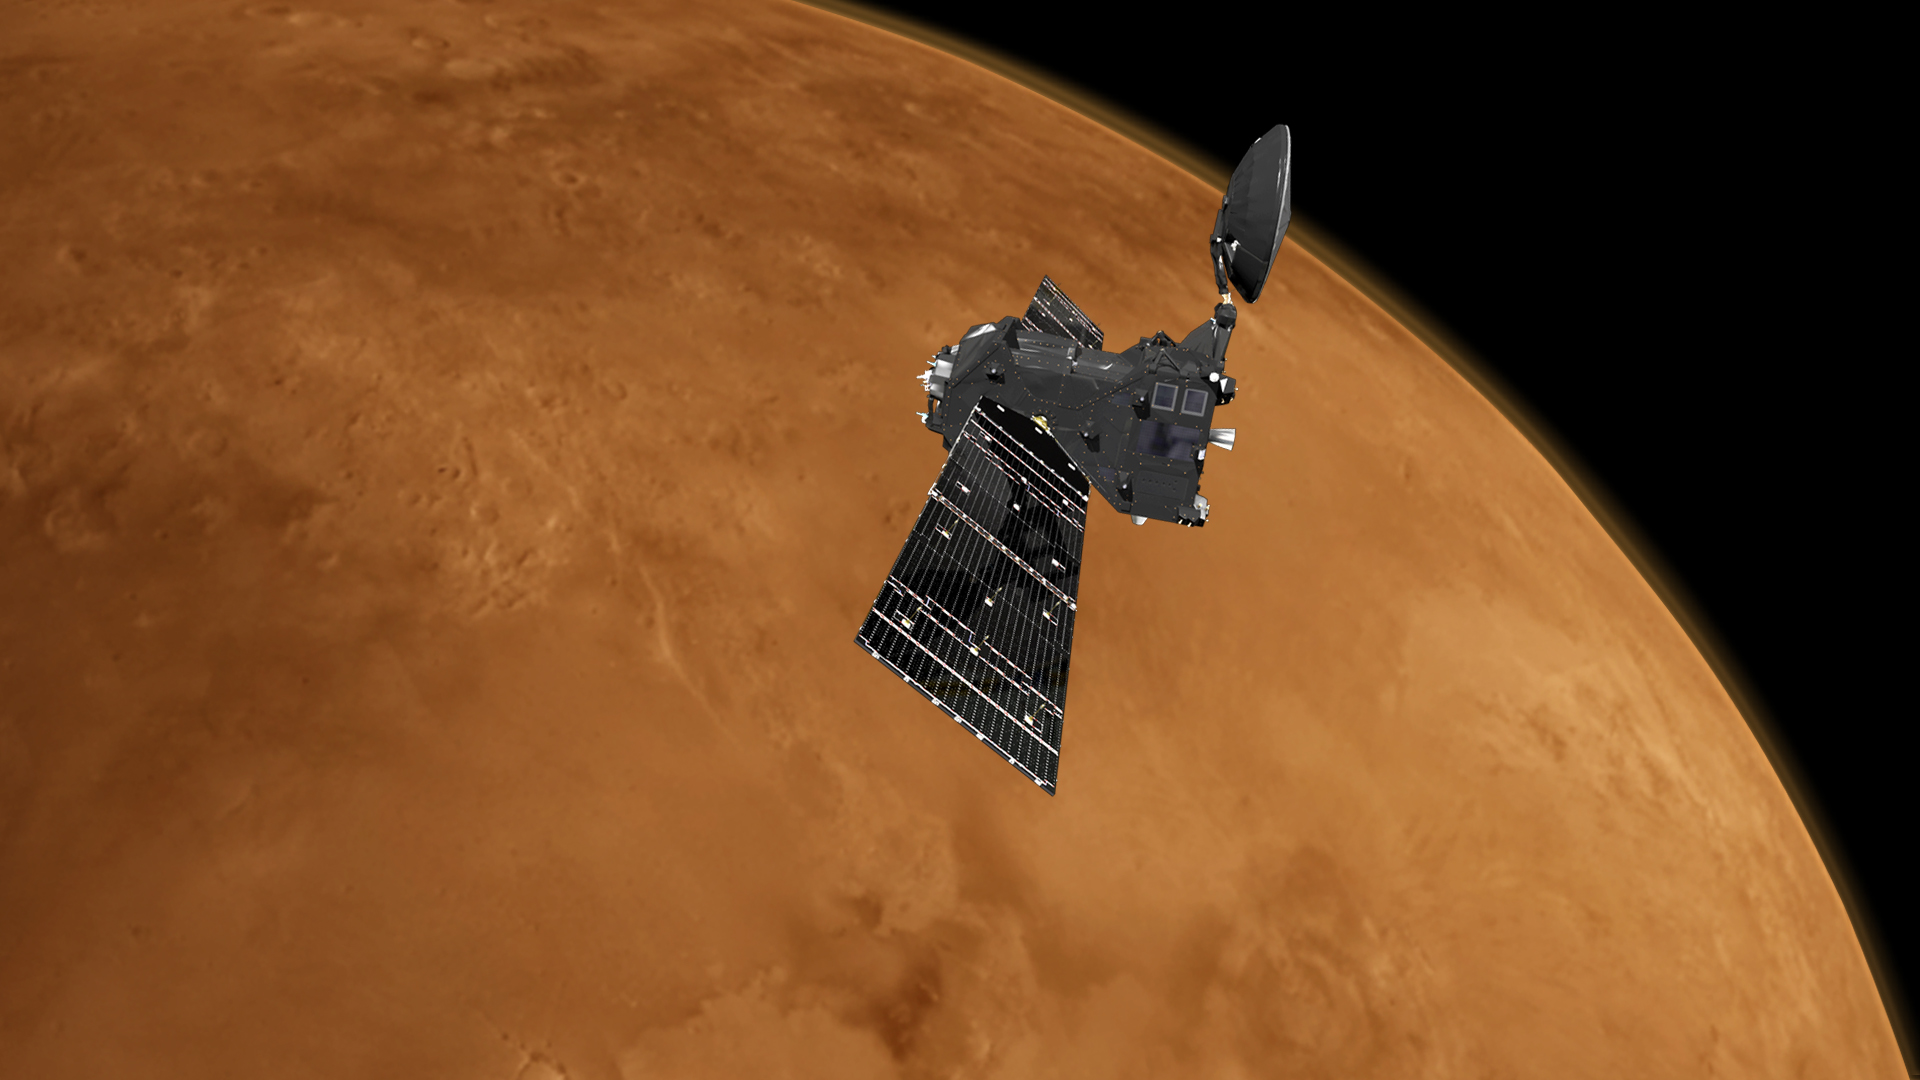 Artist's impression of the ExoMars 2016 Trace Gas Orbiter at Mars.